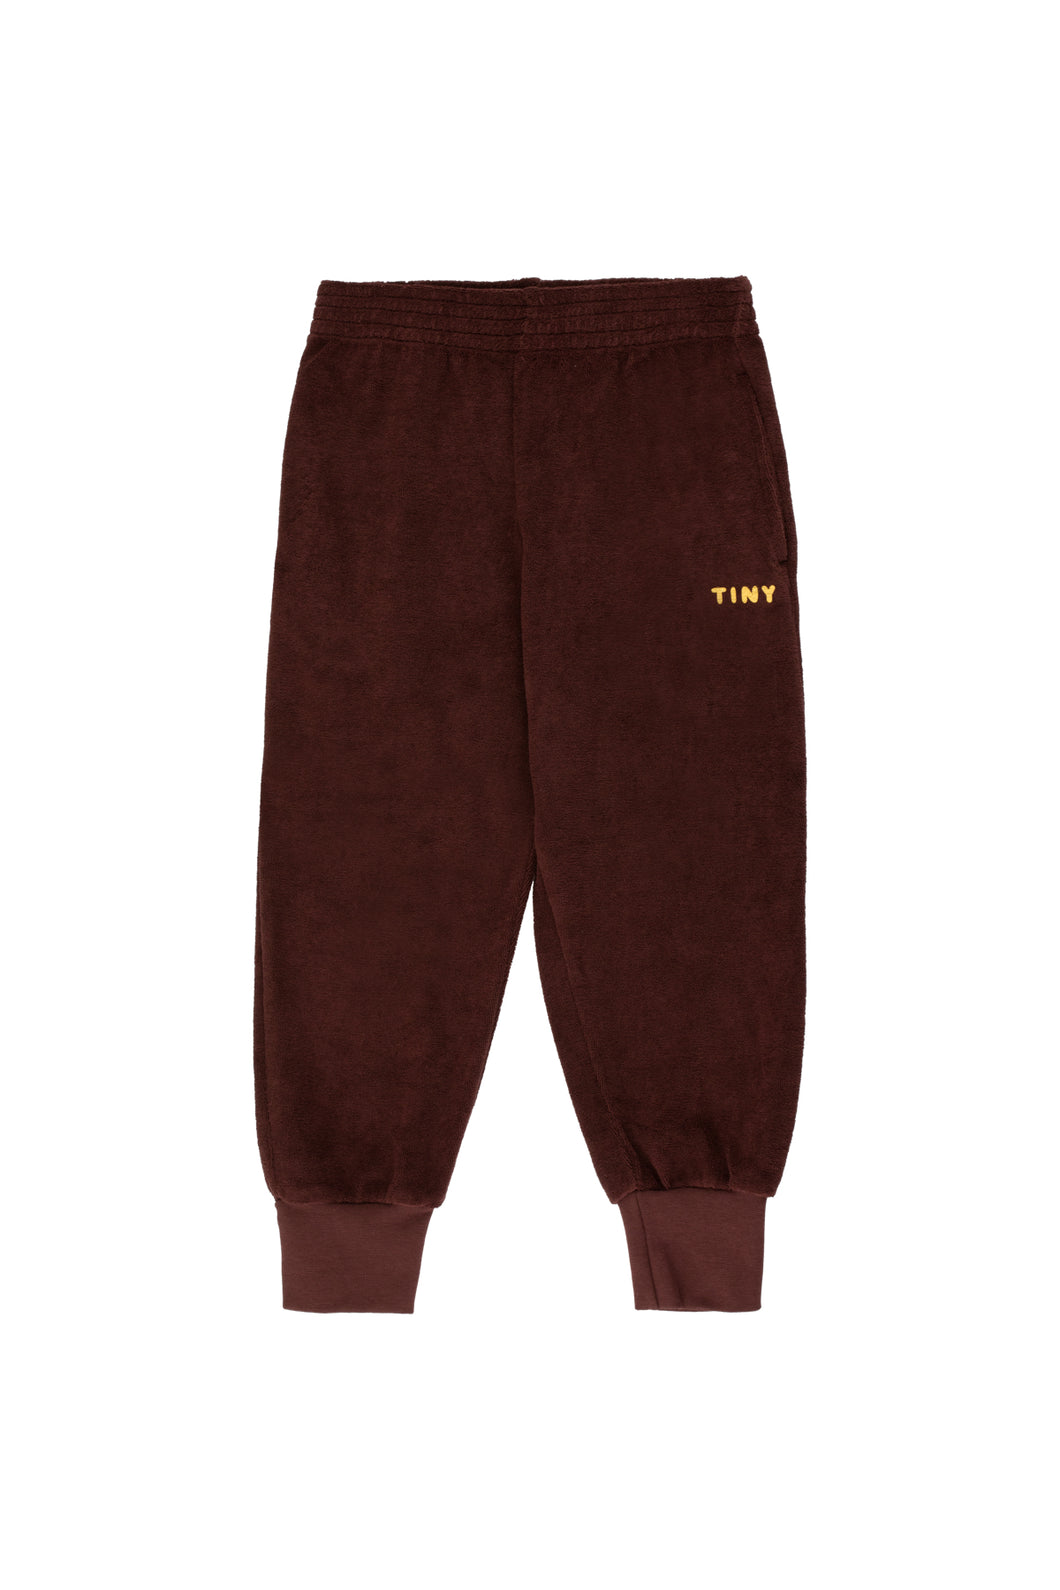 "Tiny Cottons ""TINY"" SWEATPANT"